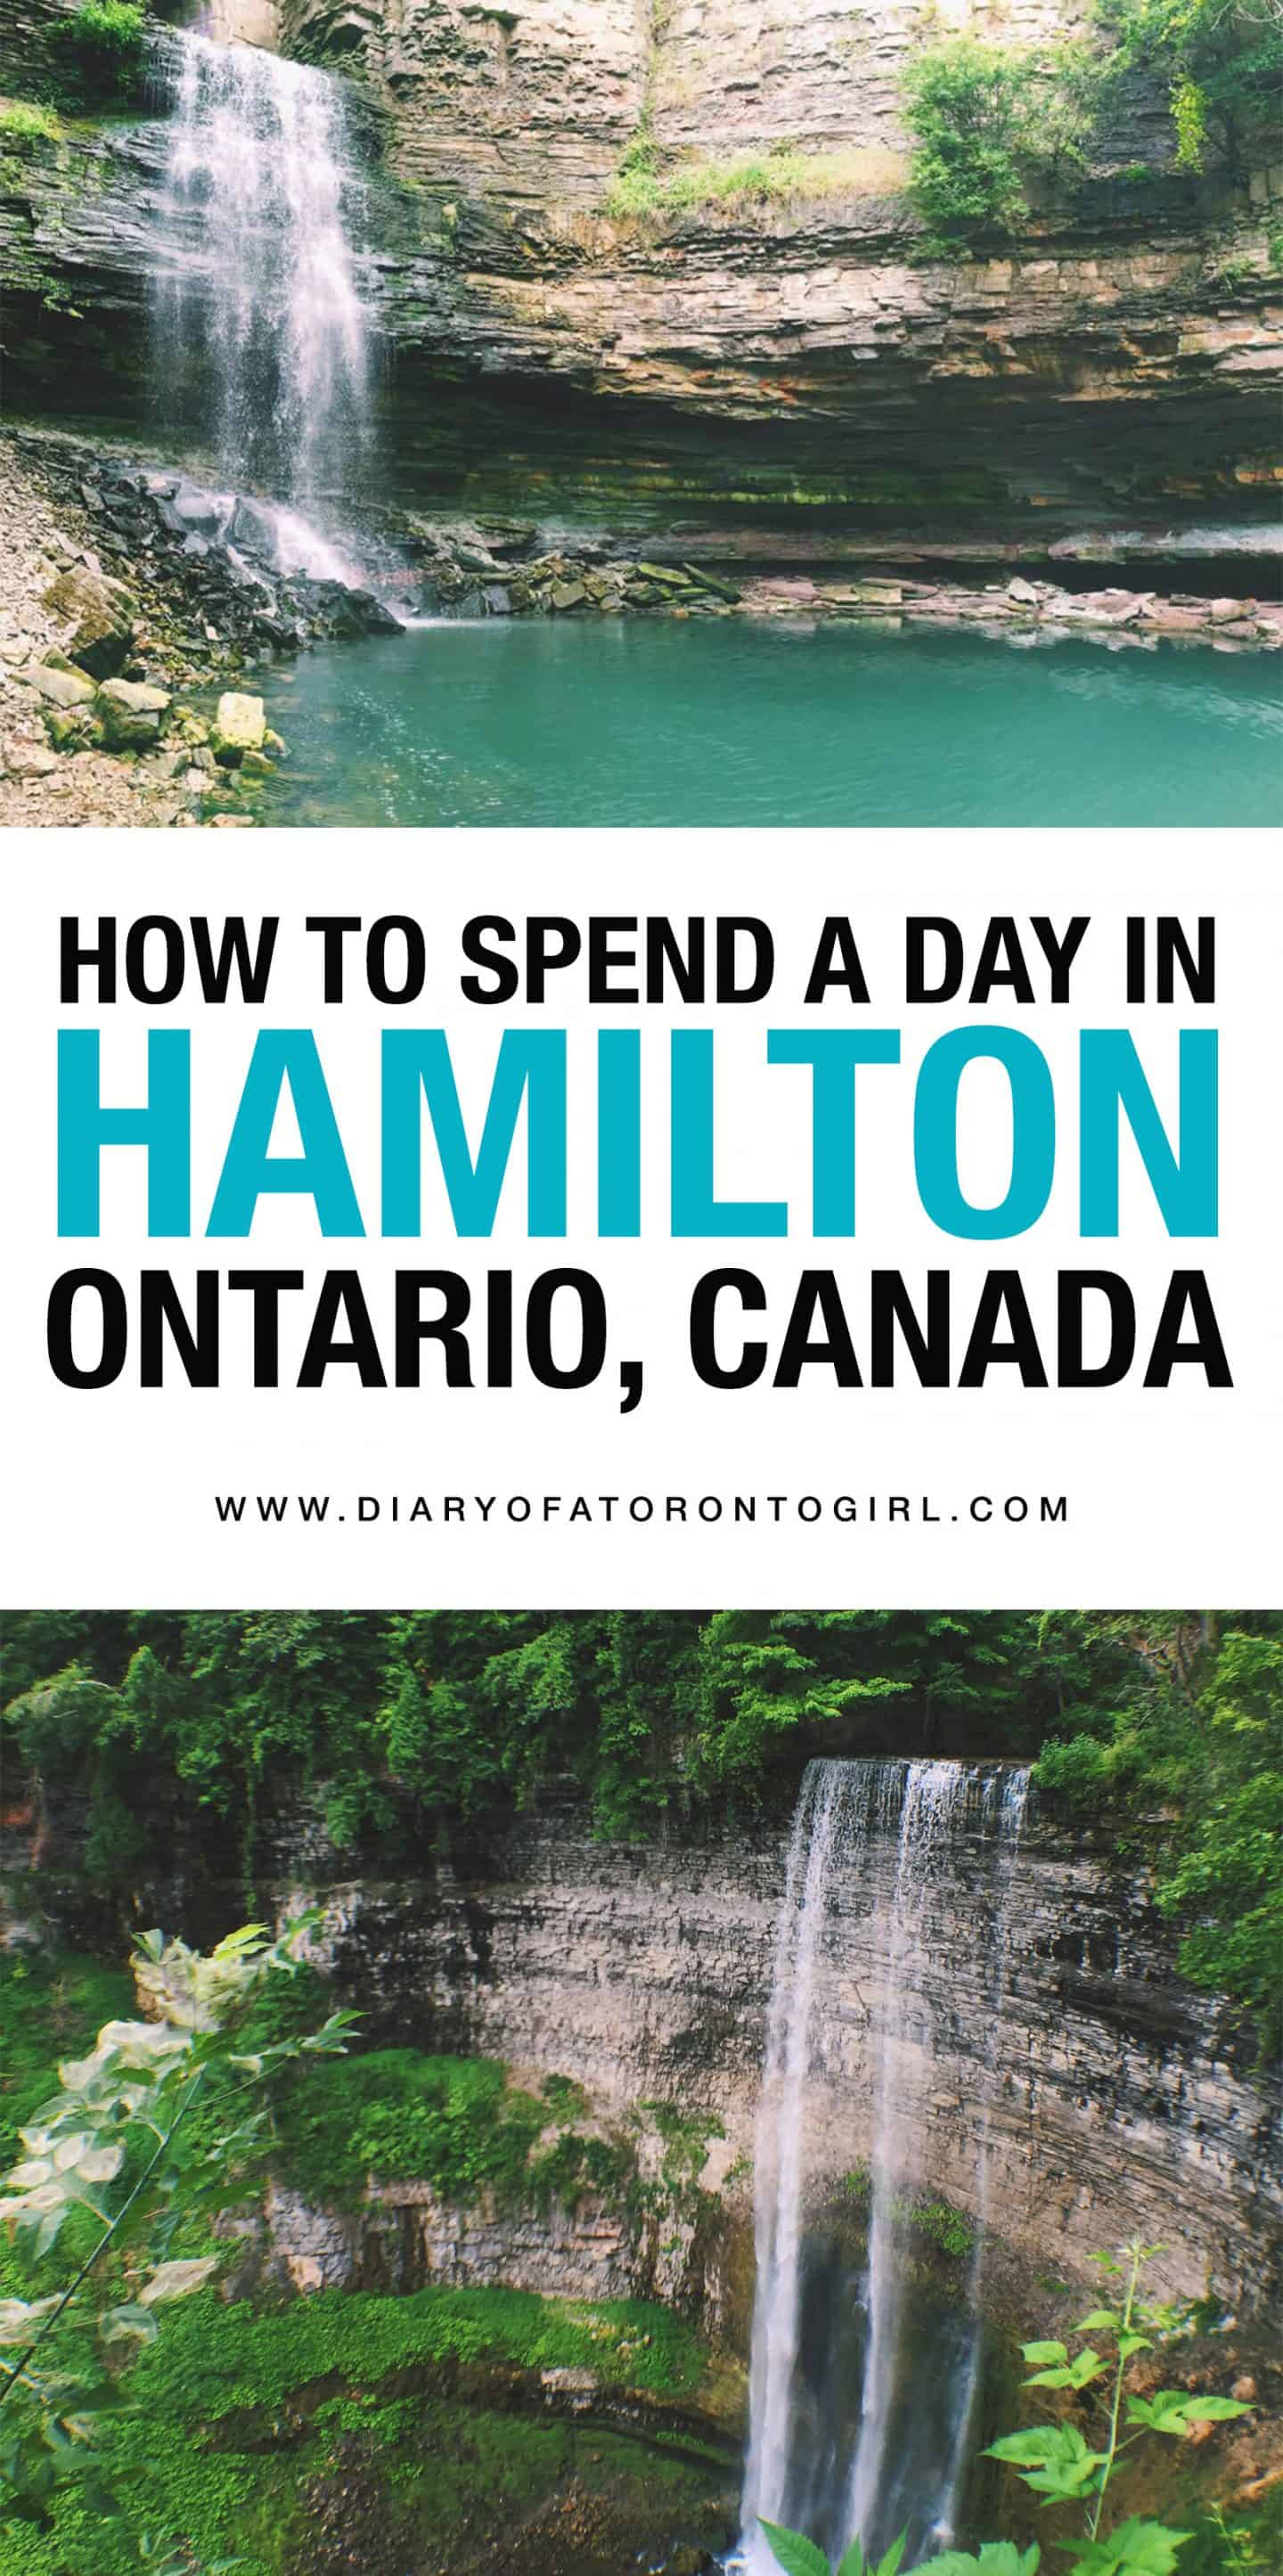 How to spend the perfect day exploring waterfalls and nature in Hamilton, Ontario!